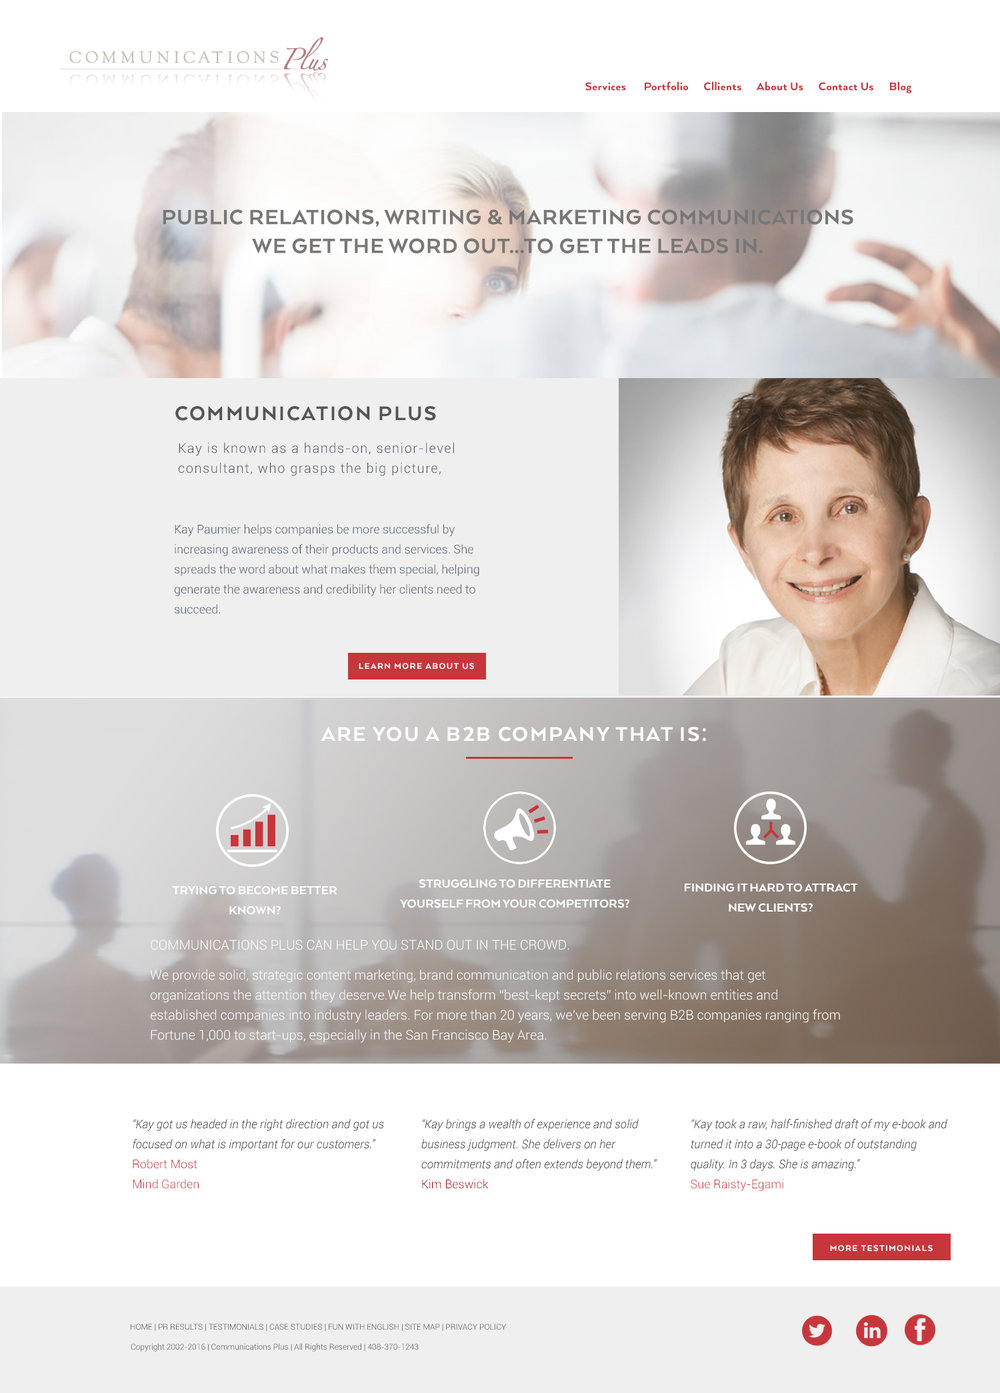 CommunicationPlus-homepage.jpg